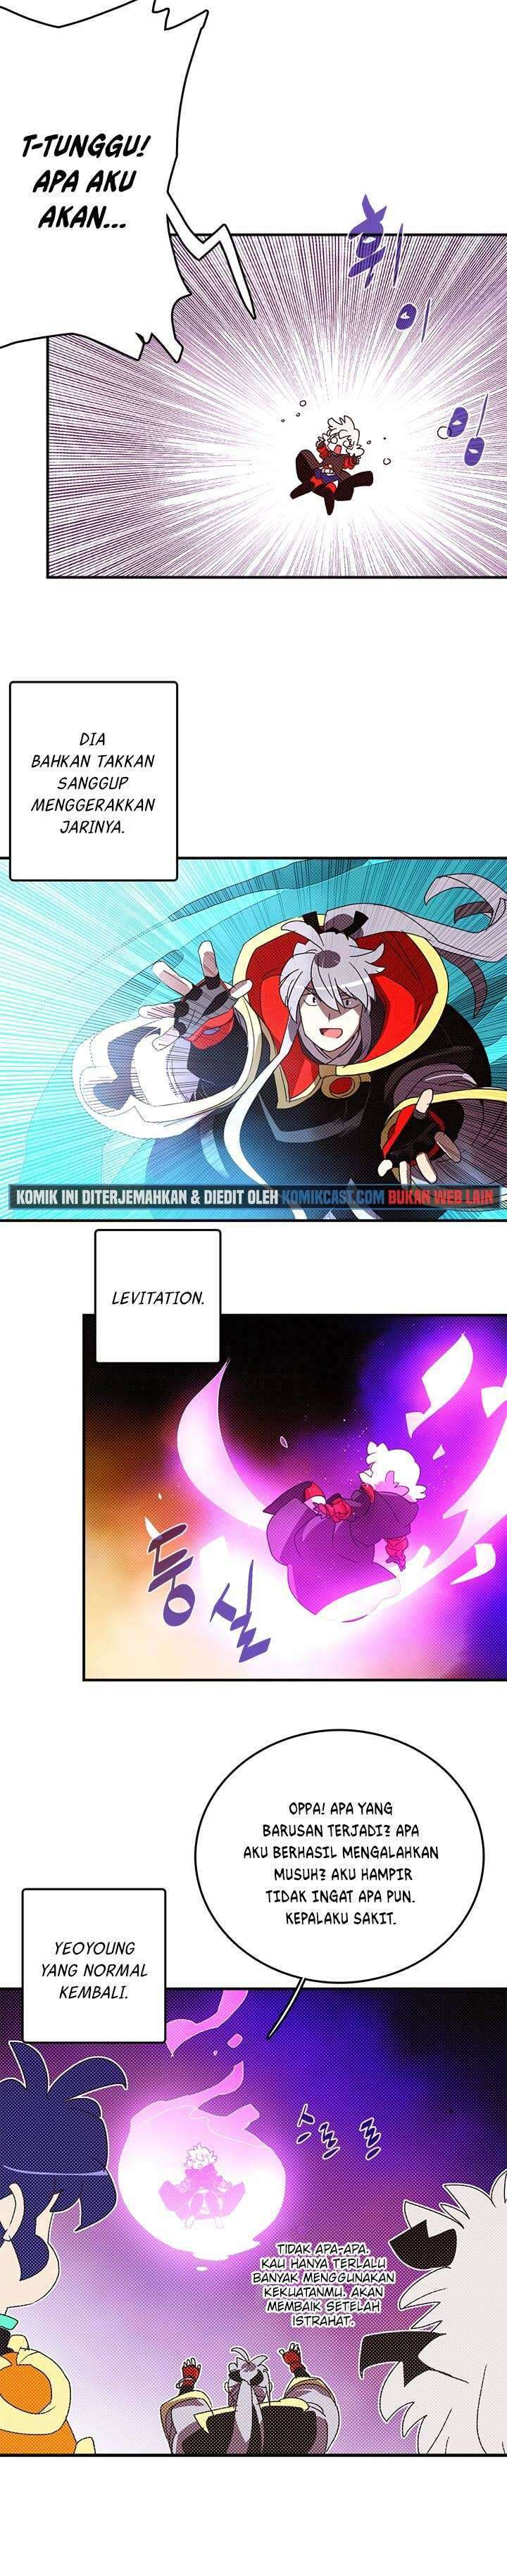 I Am the Sorcerer King Chapter 139 Bahasa Indonesia page 7